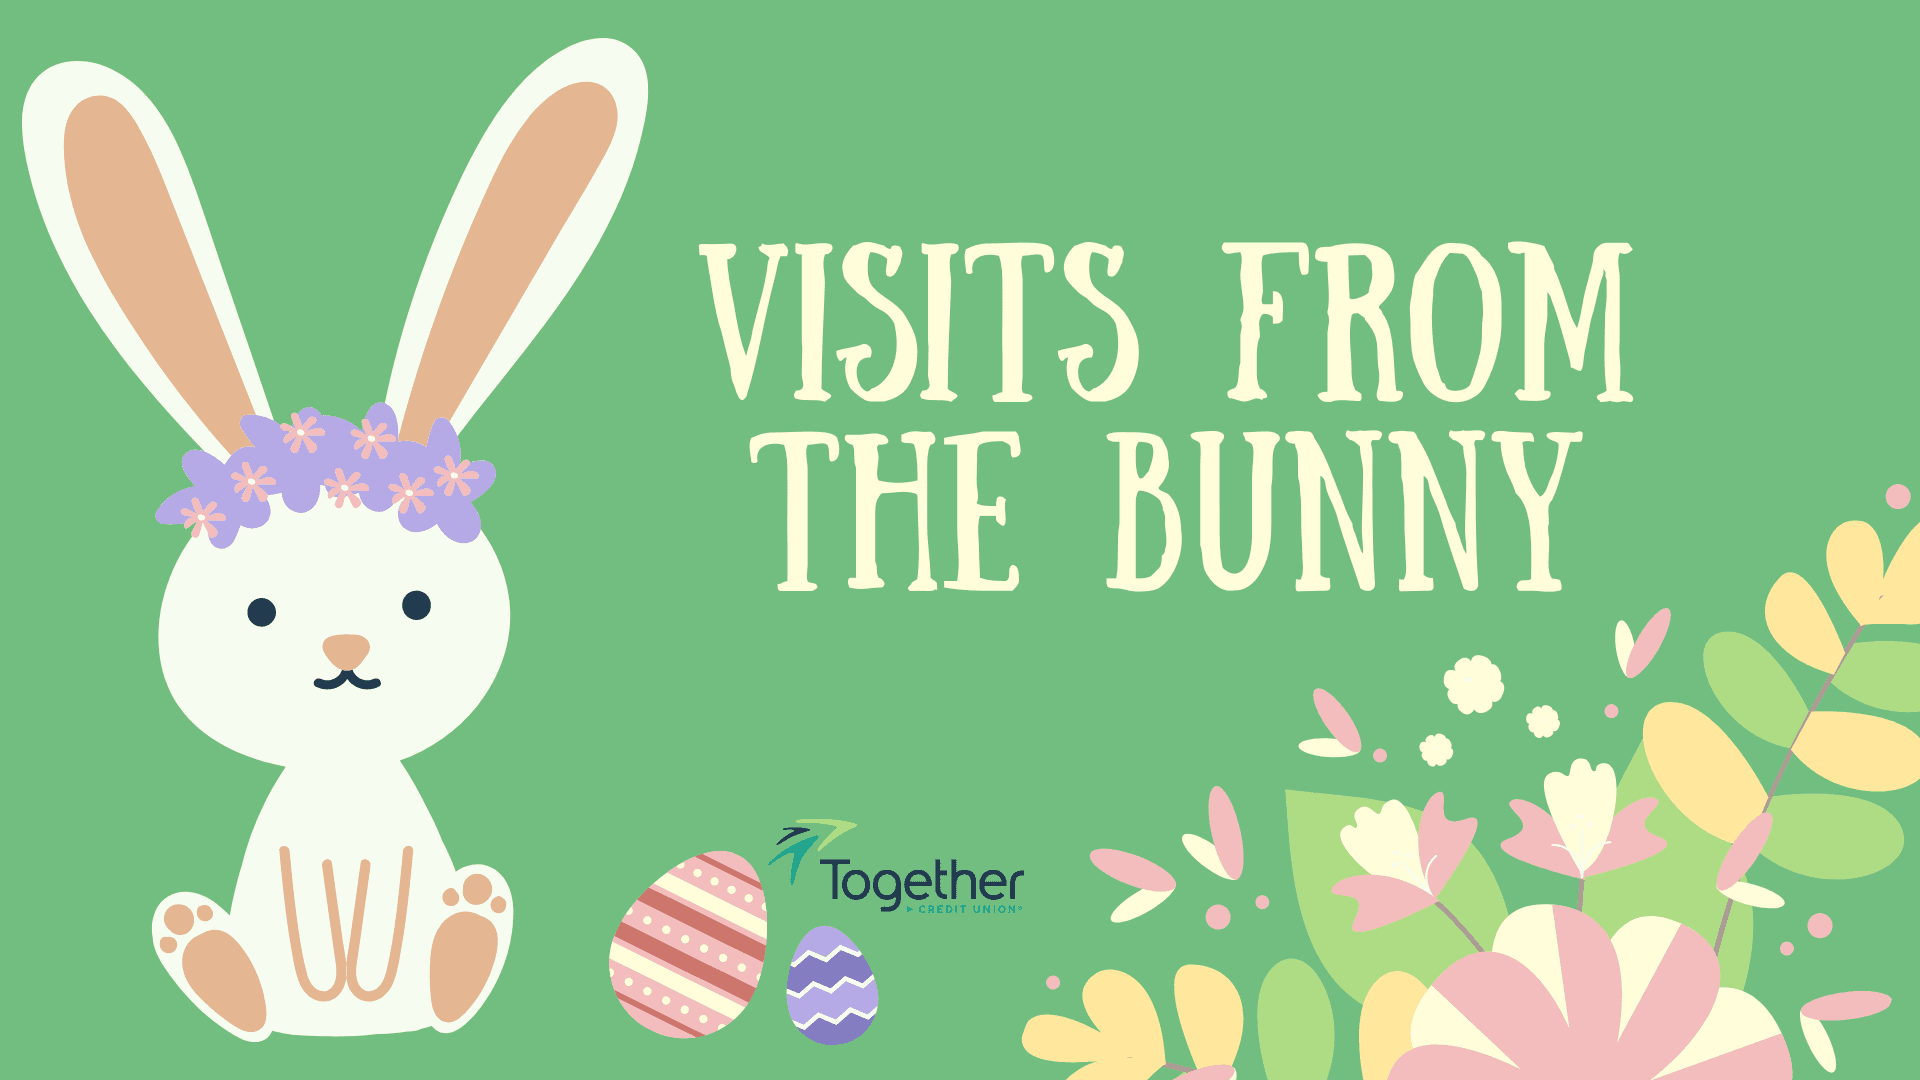 Visits From the Bunny (1)